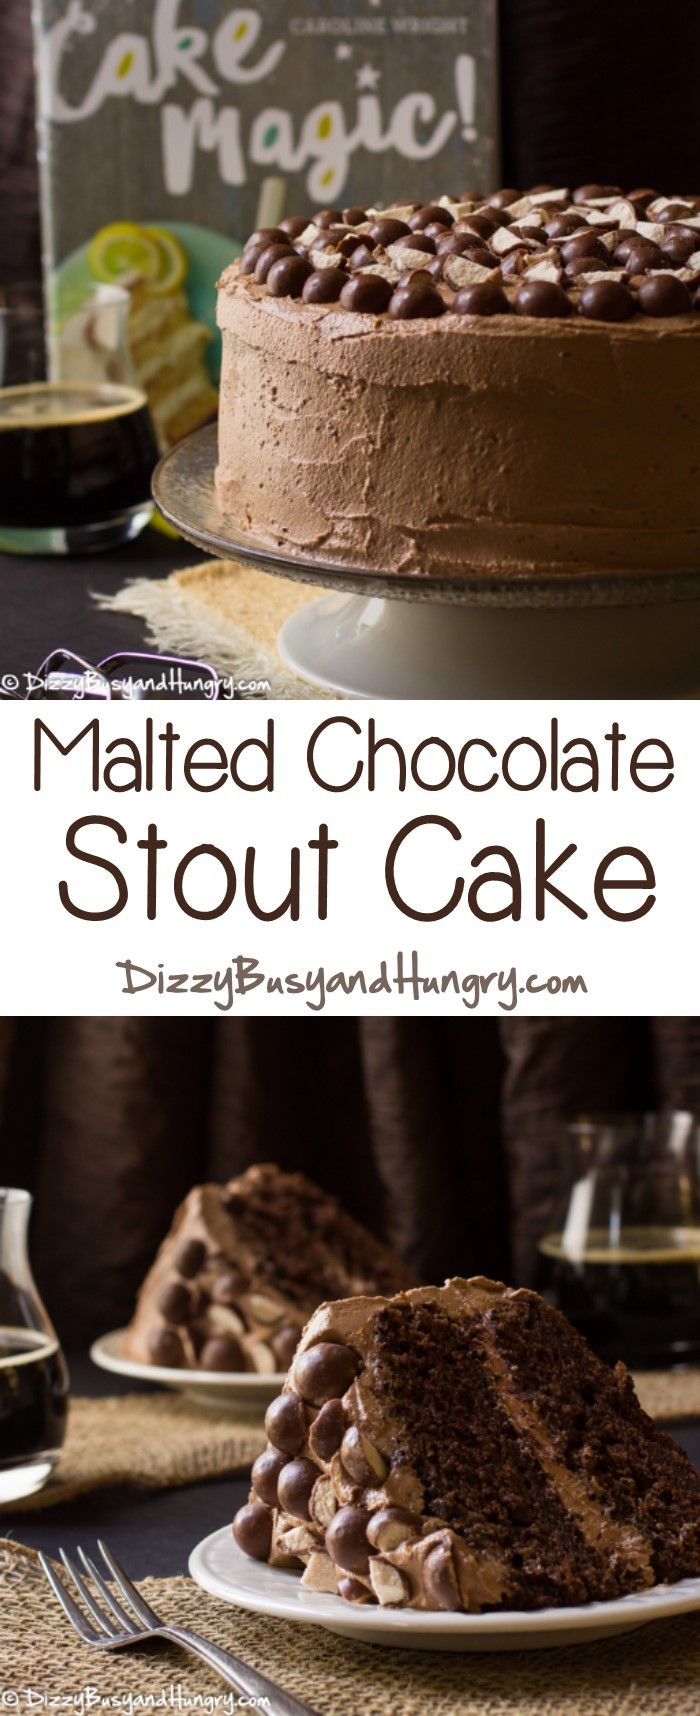 about Chocolate Stout Cake on Pinterest | Chocolate stout, Chocolate ...